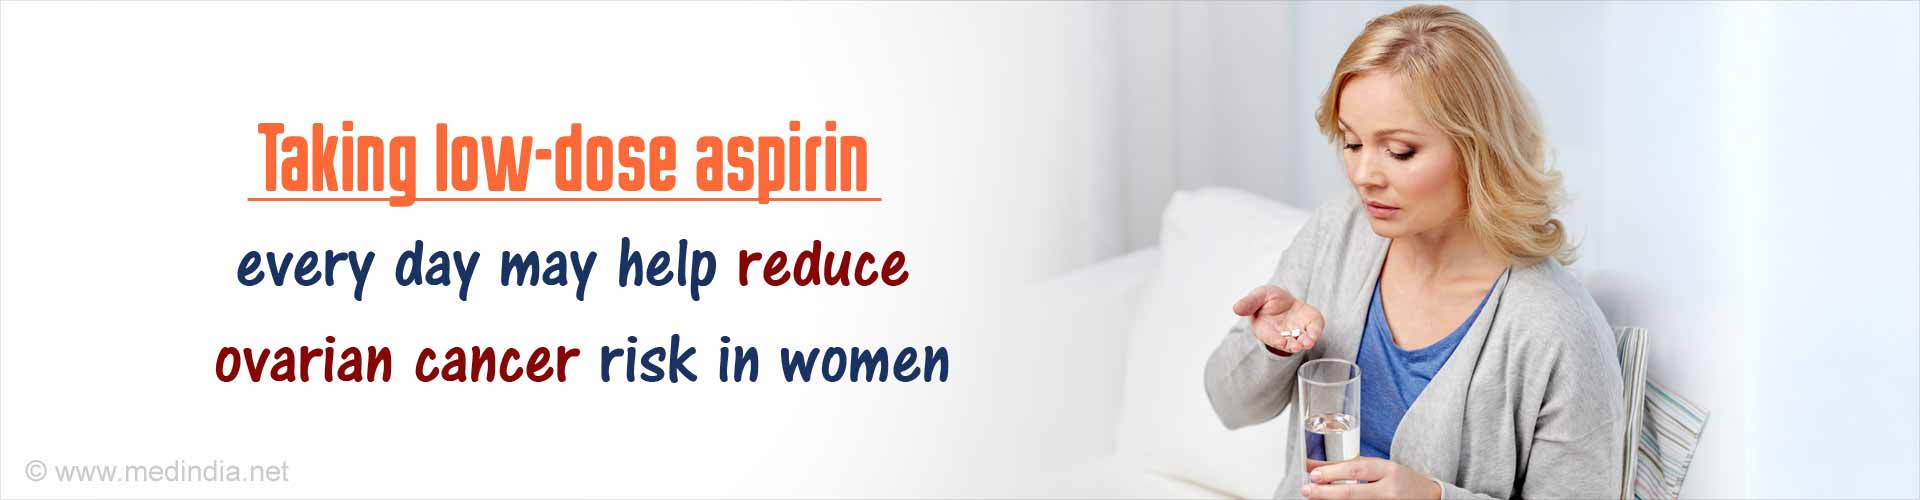 Regular Use of Aspirin Can Lower Ovarian Cancer Risk